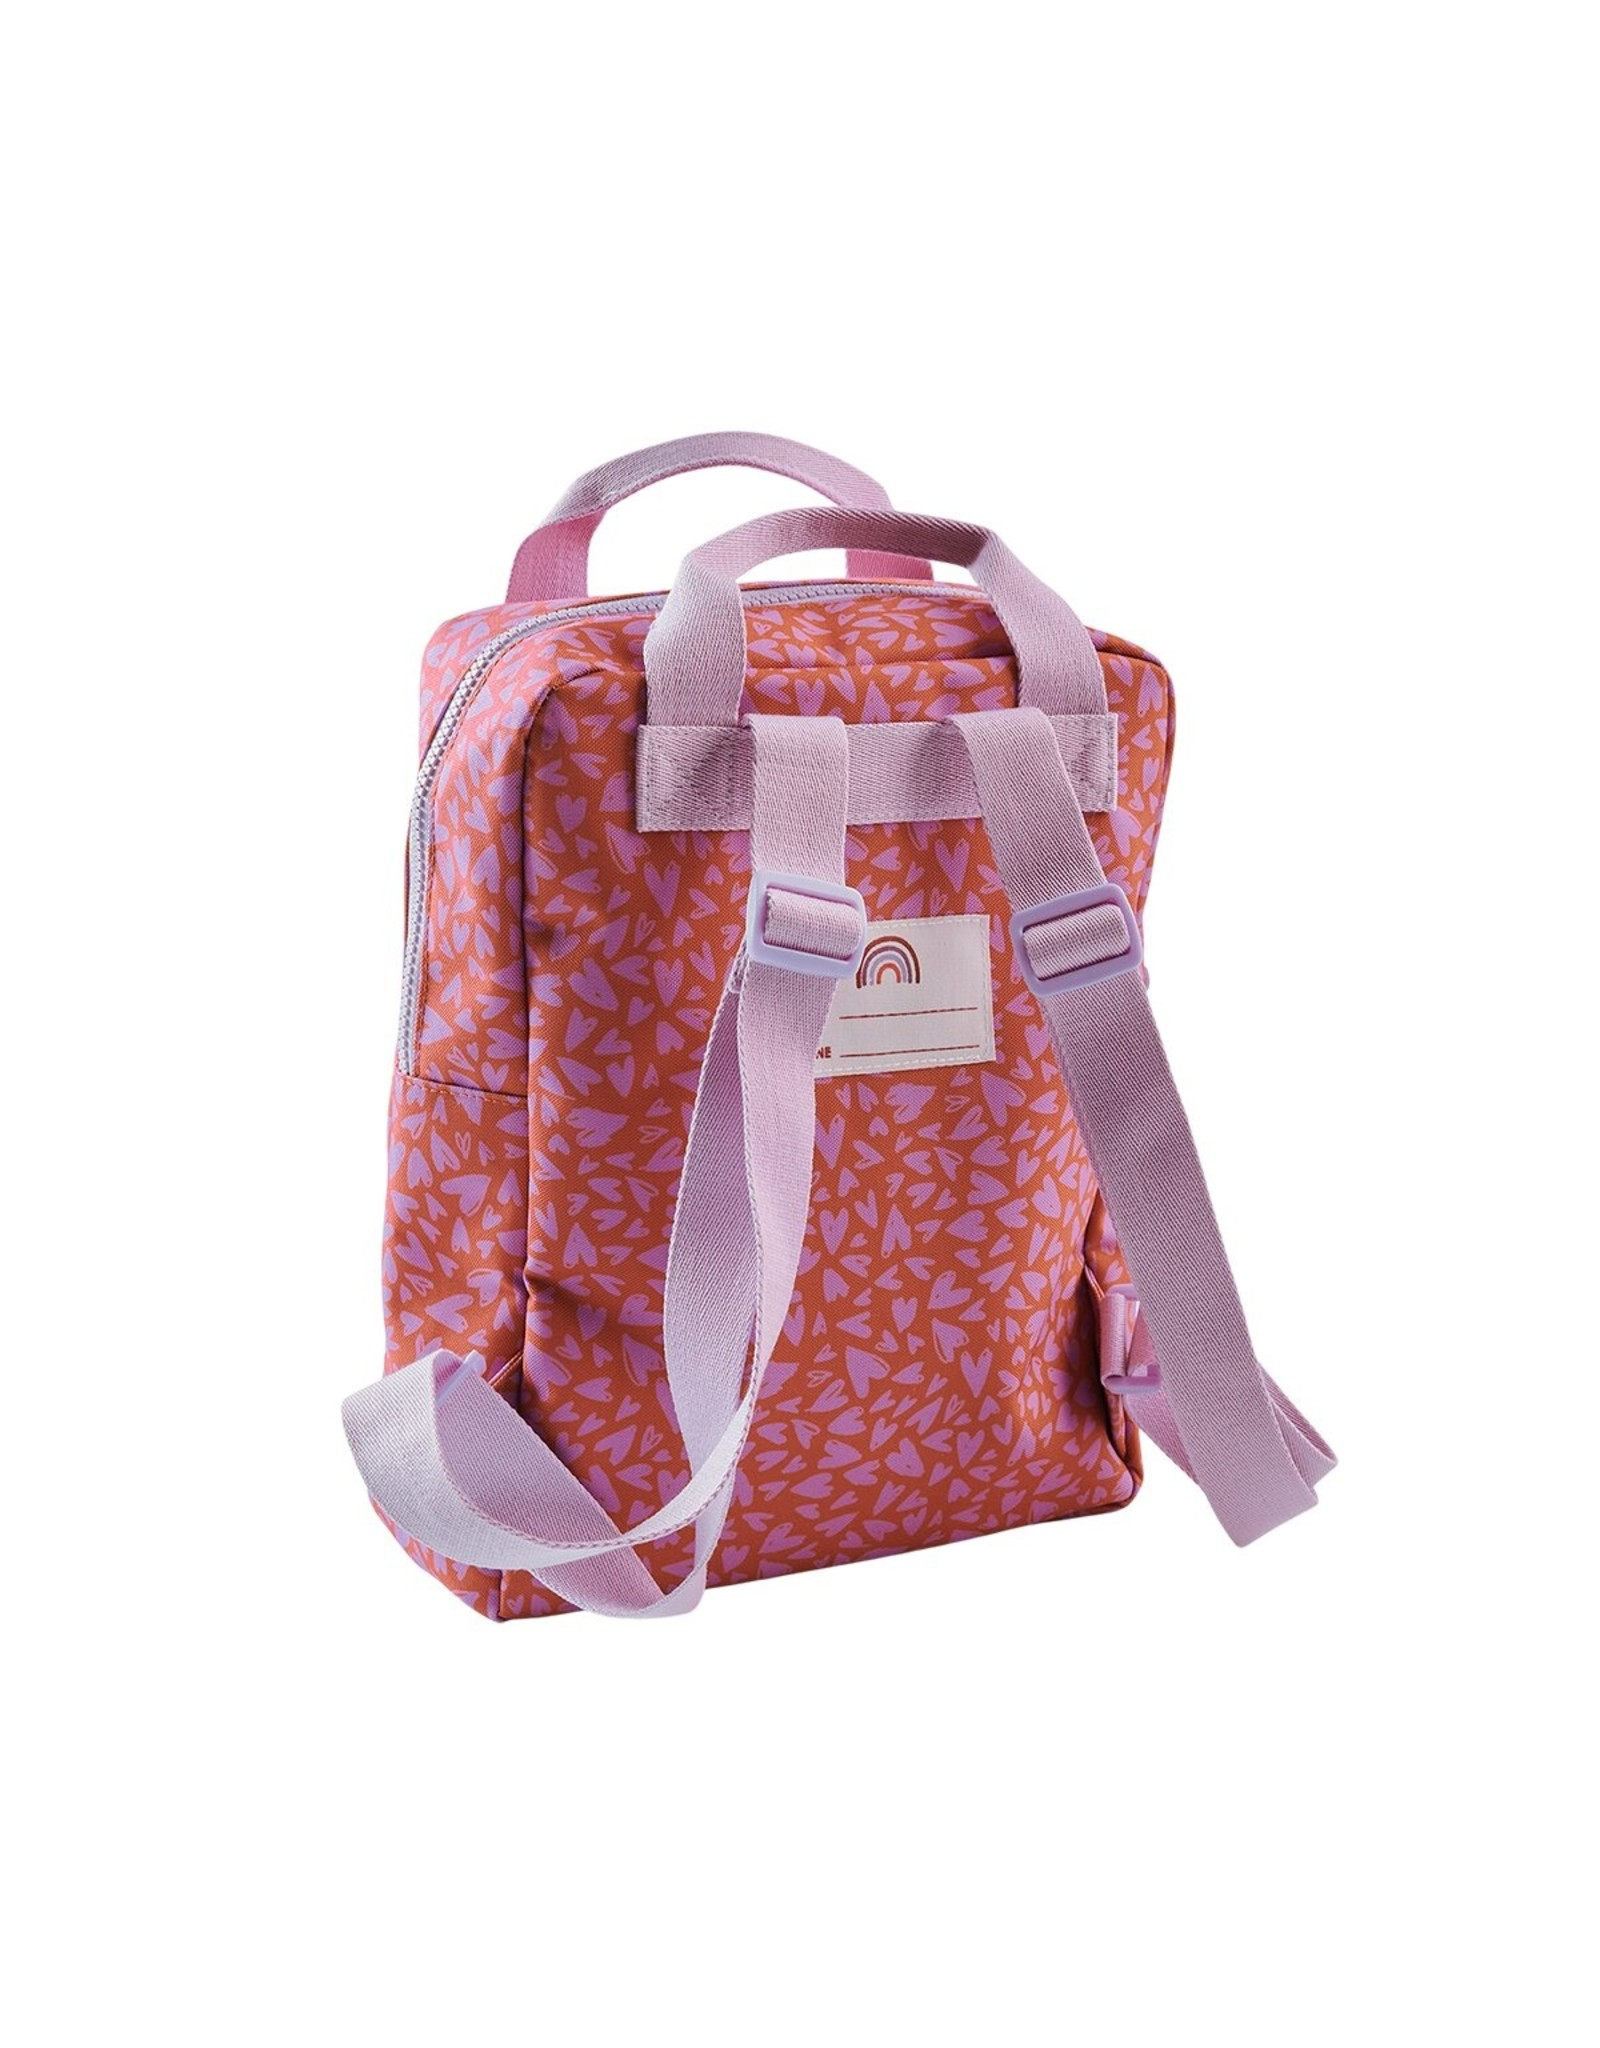 Z8 Backpack hearts